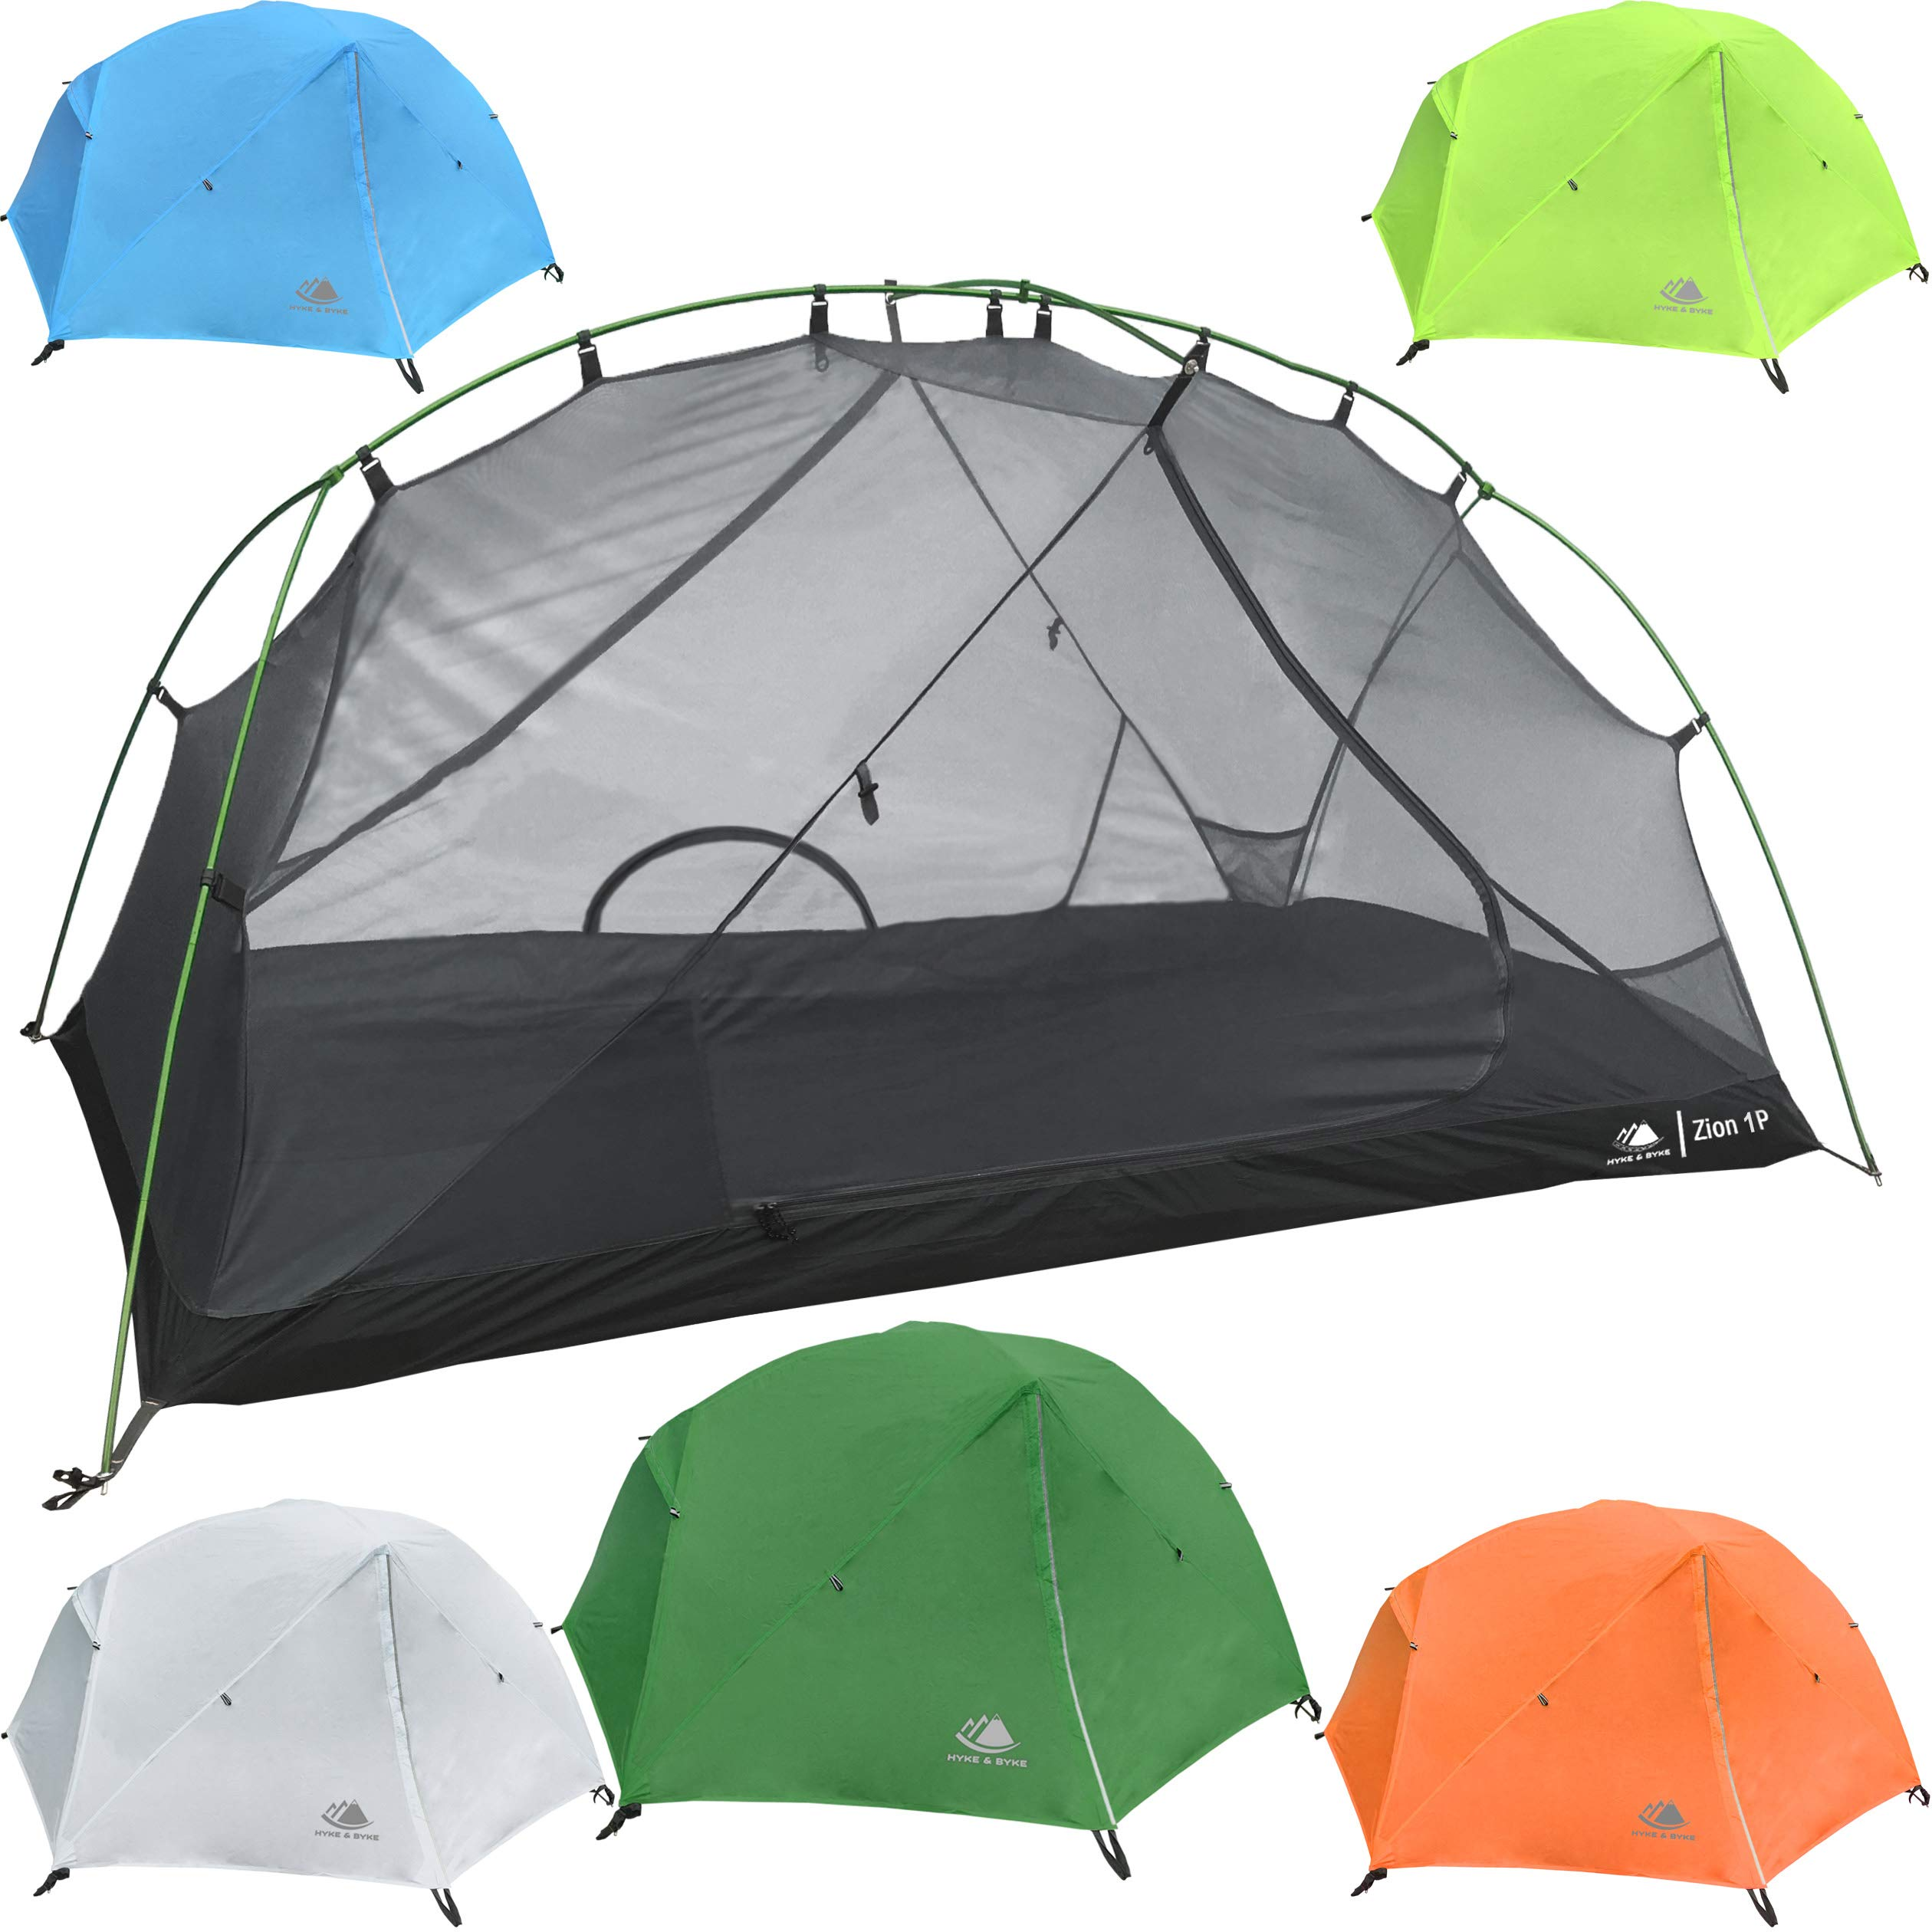 Hyke & Byke 1 Person Backpacking Tent with Footprint - Lightweight Zion One Man 3 Season Ultralight, Waterproof, Ultra Compact 1p Freestanding Backpack Tents for Camping and Hiking (Forest Green) by Hyke & Byke